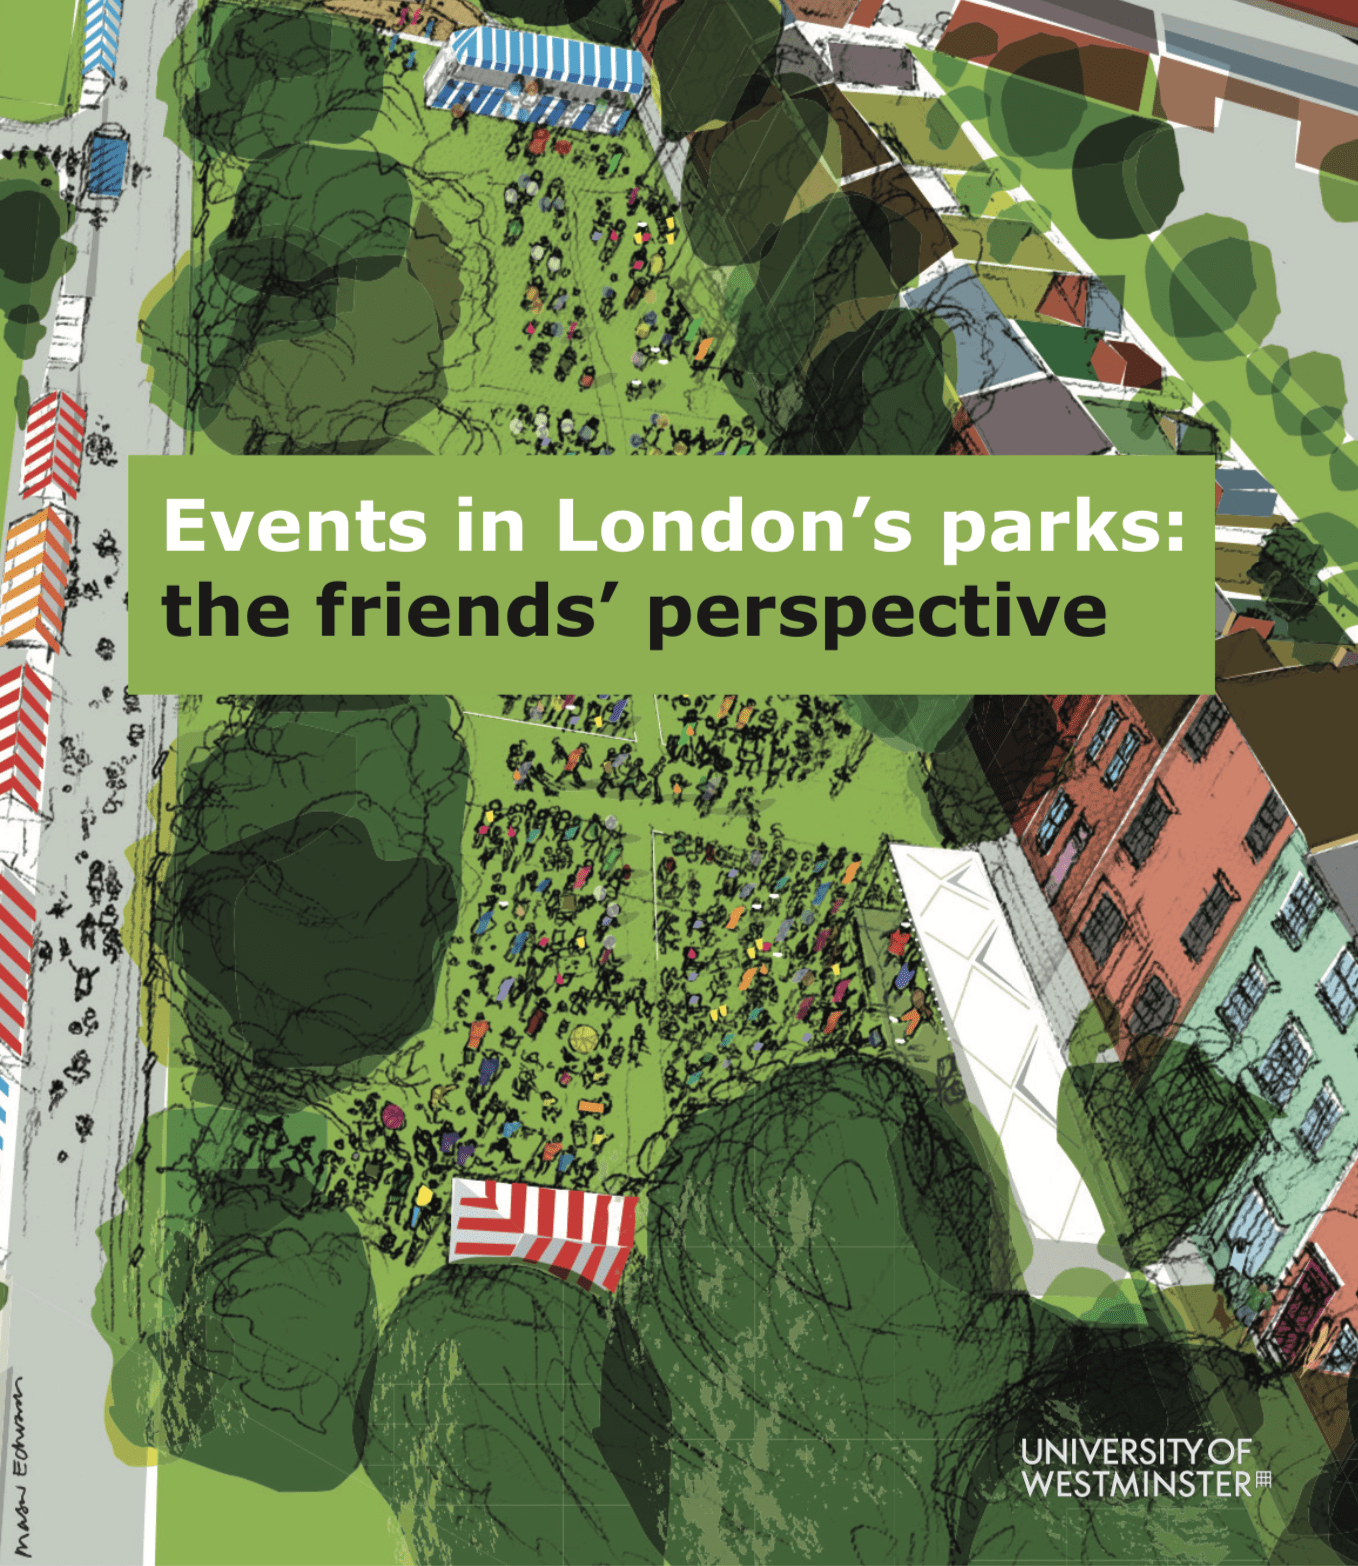 Events in London's Parks: The Friends' perspective